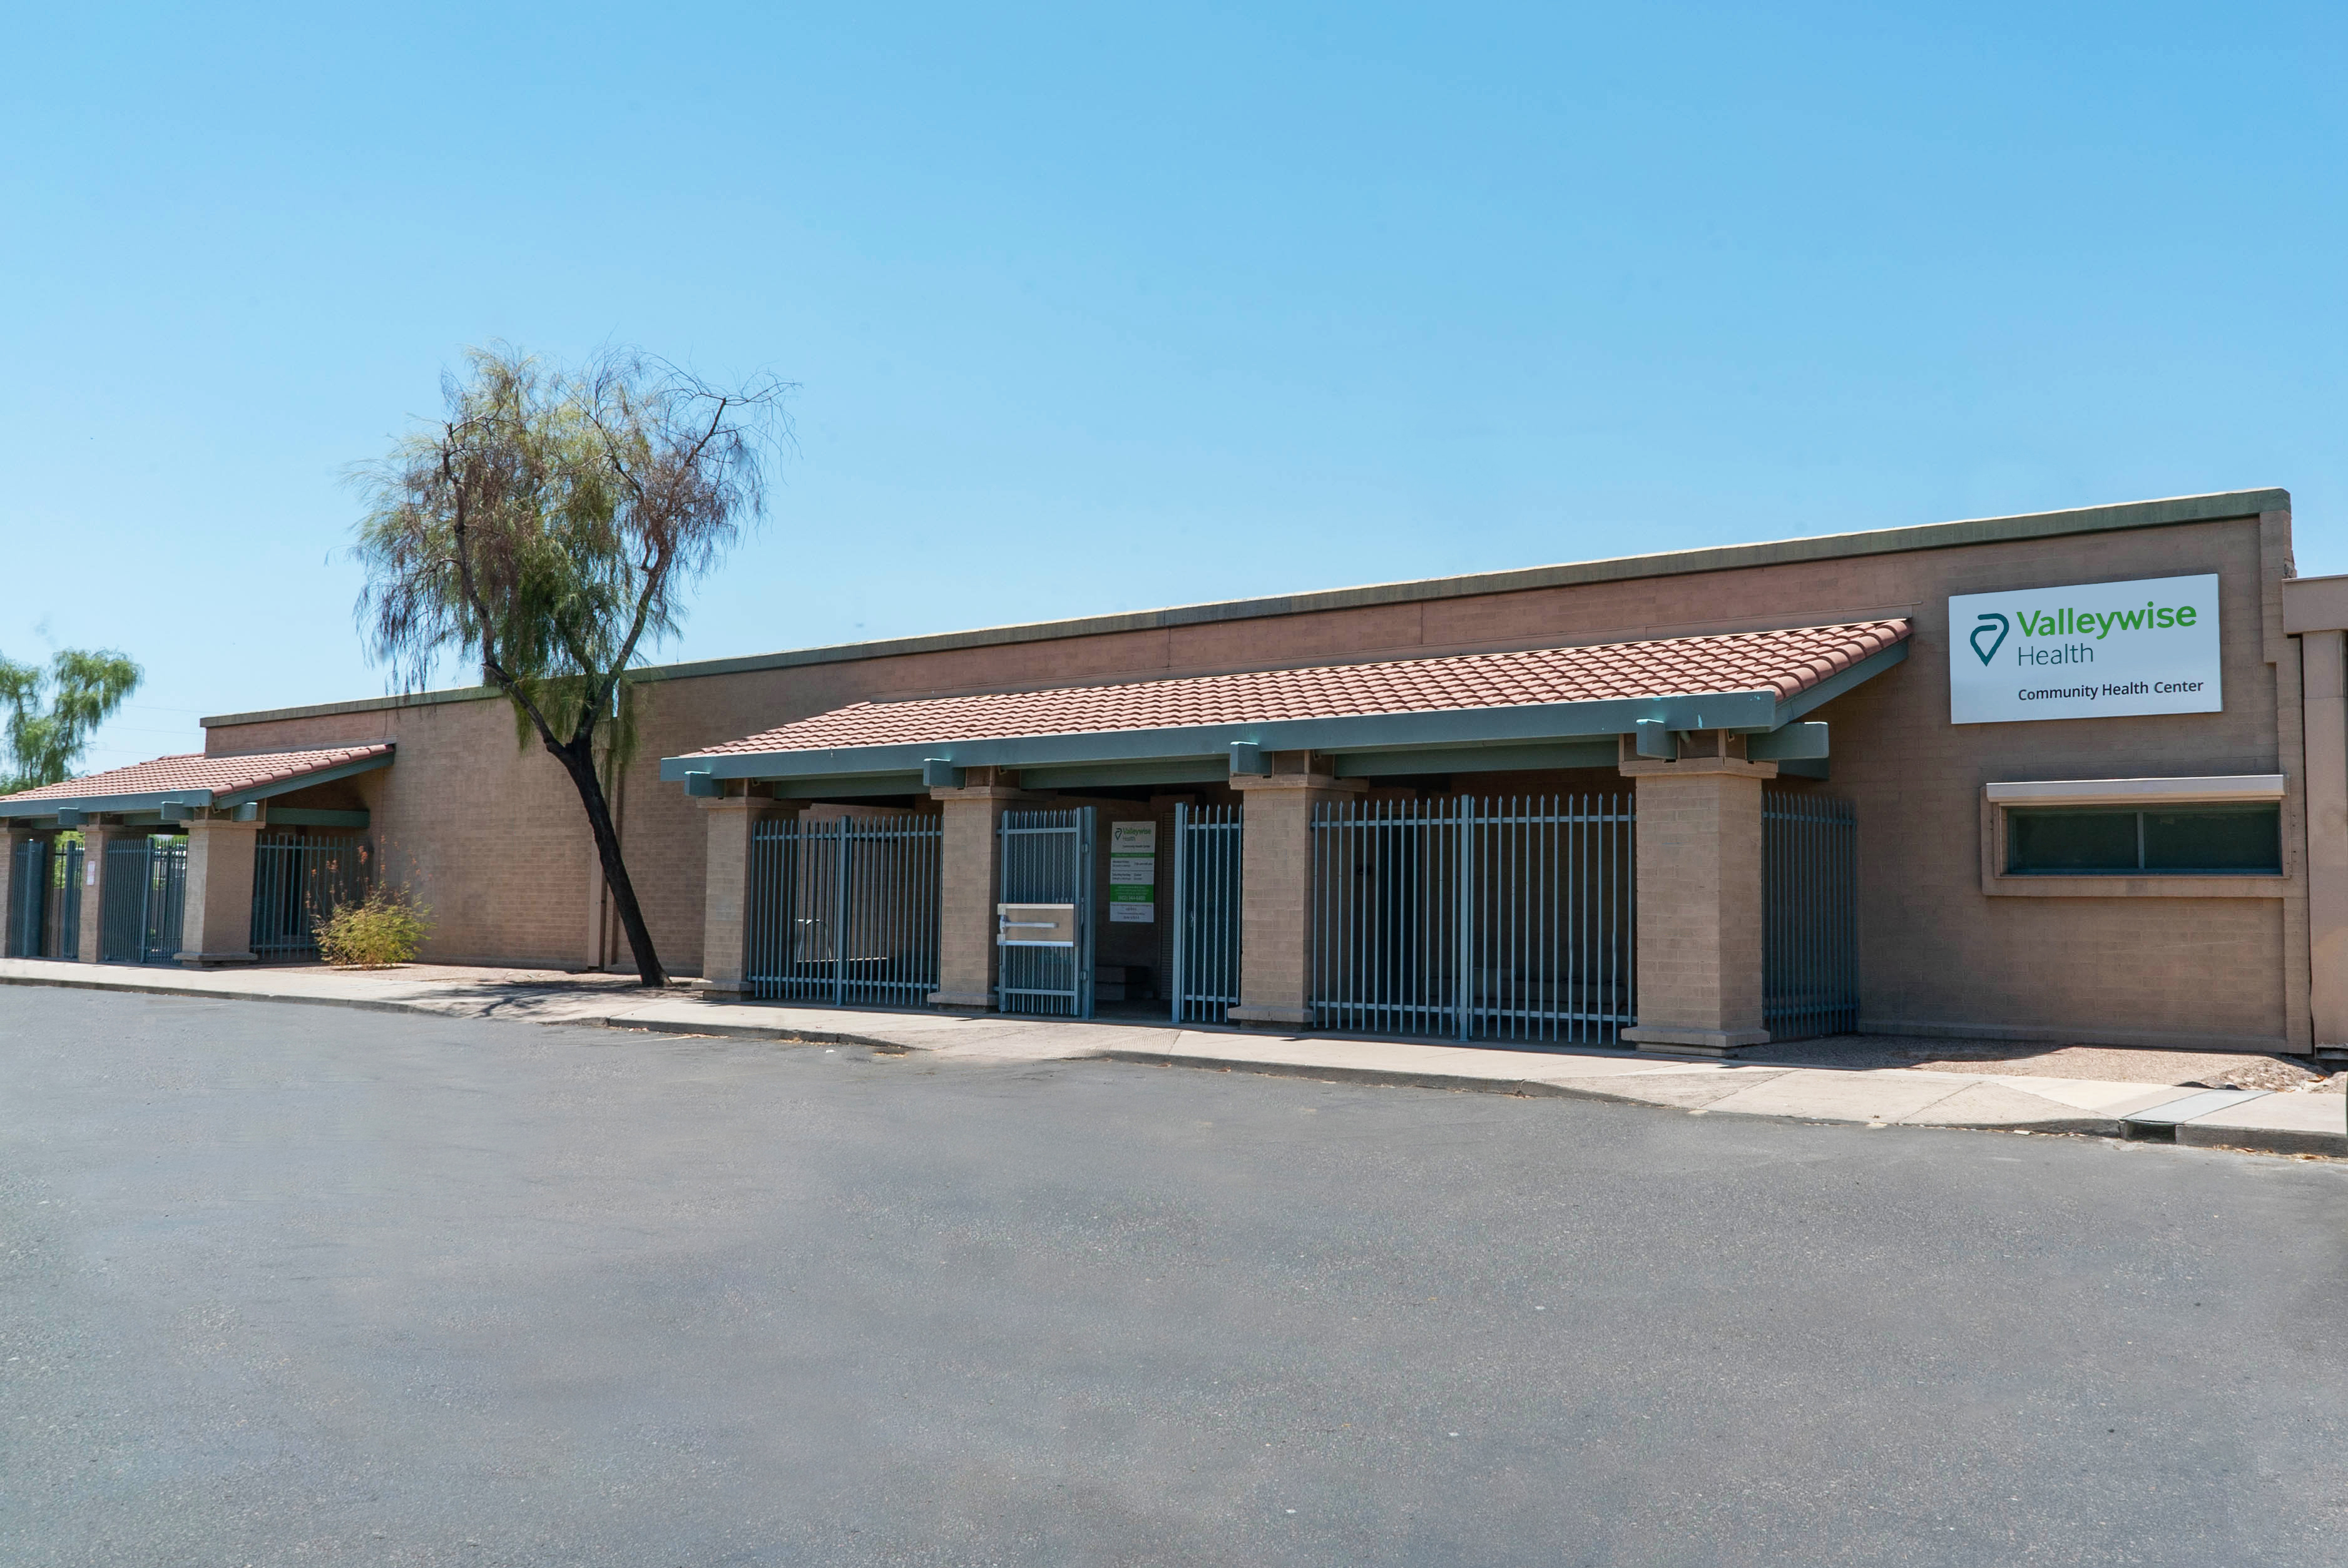 Valleywise Community Health Center South Central Phoenix